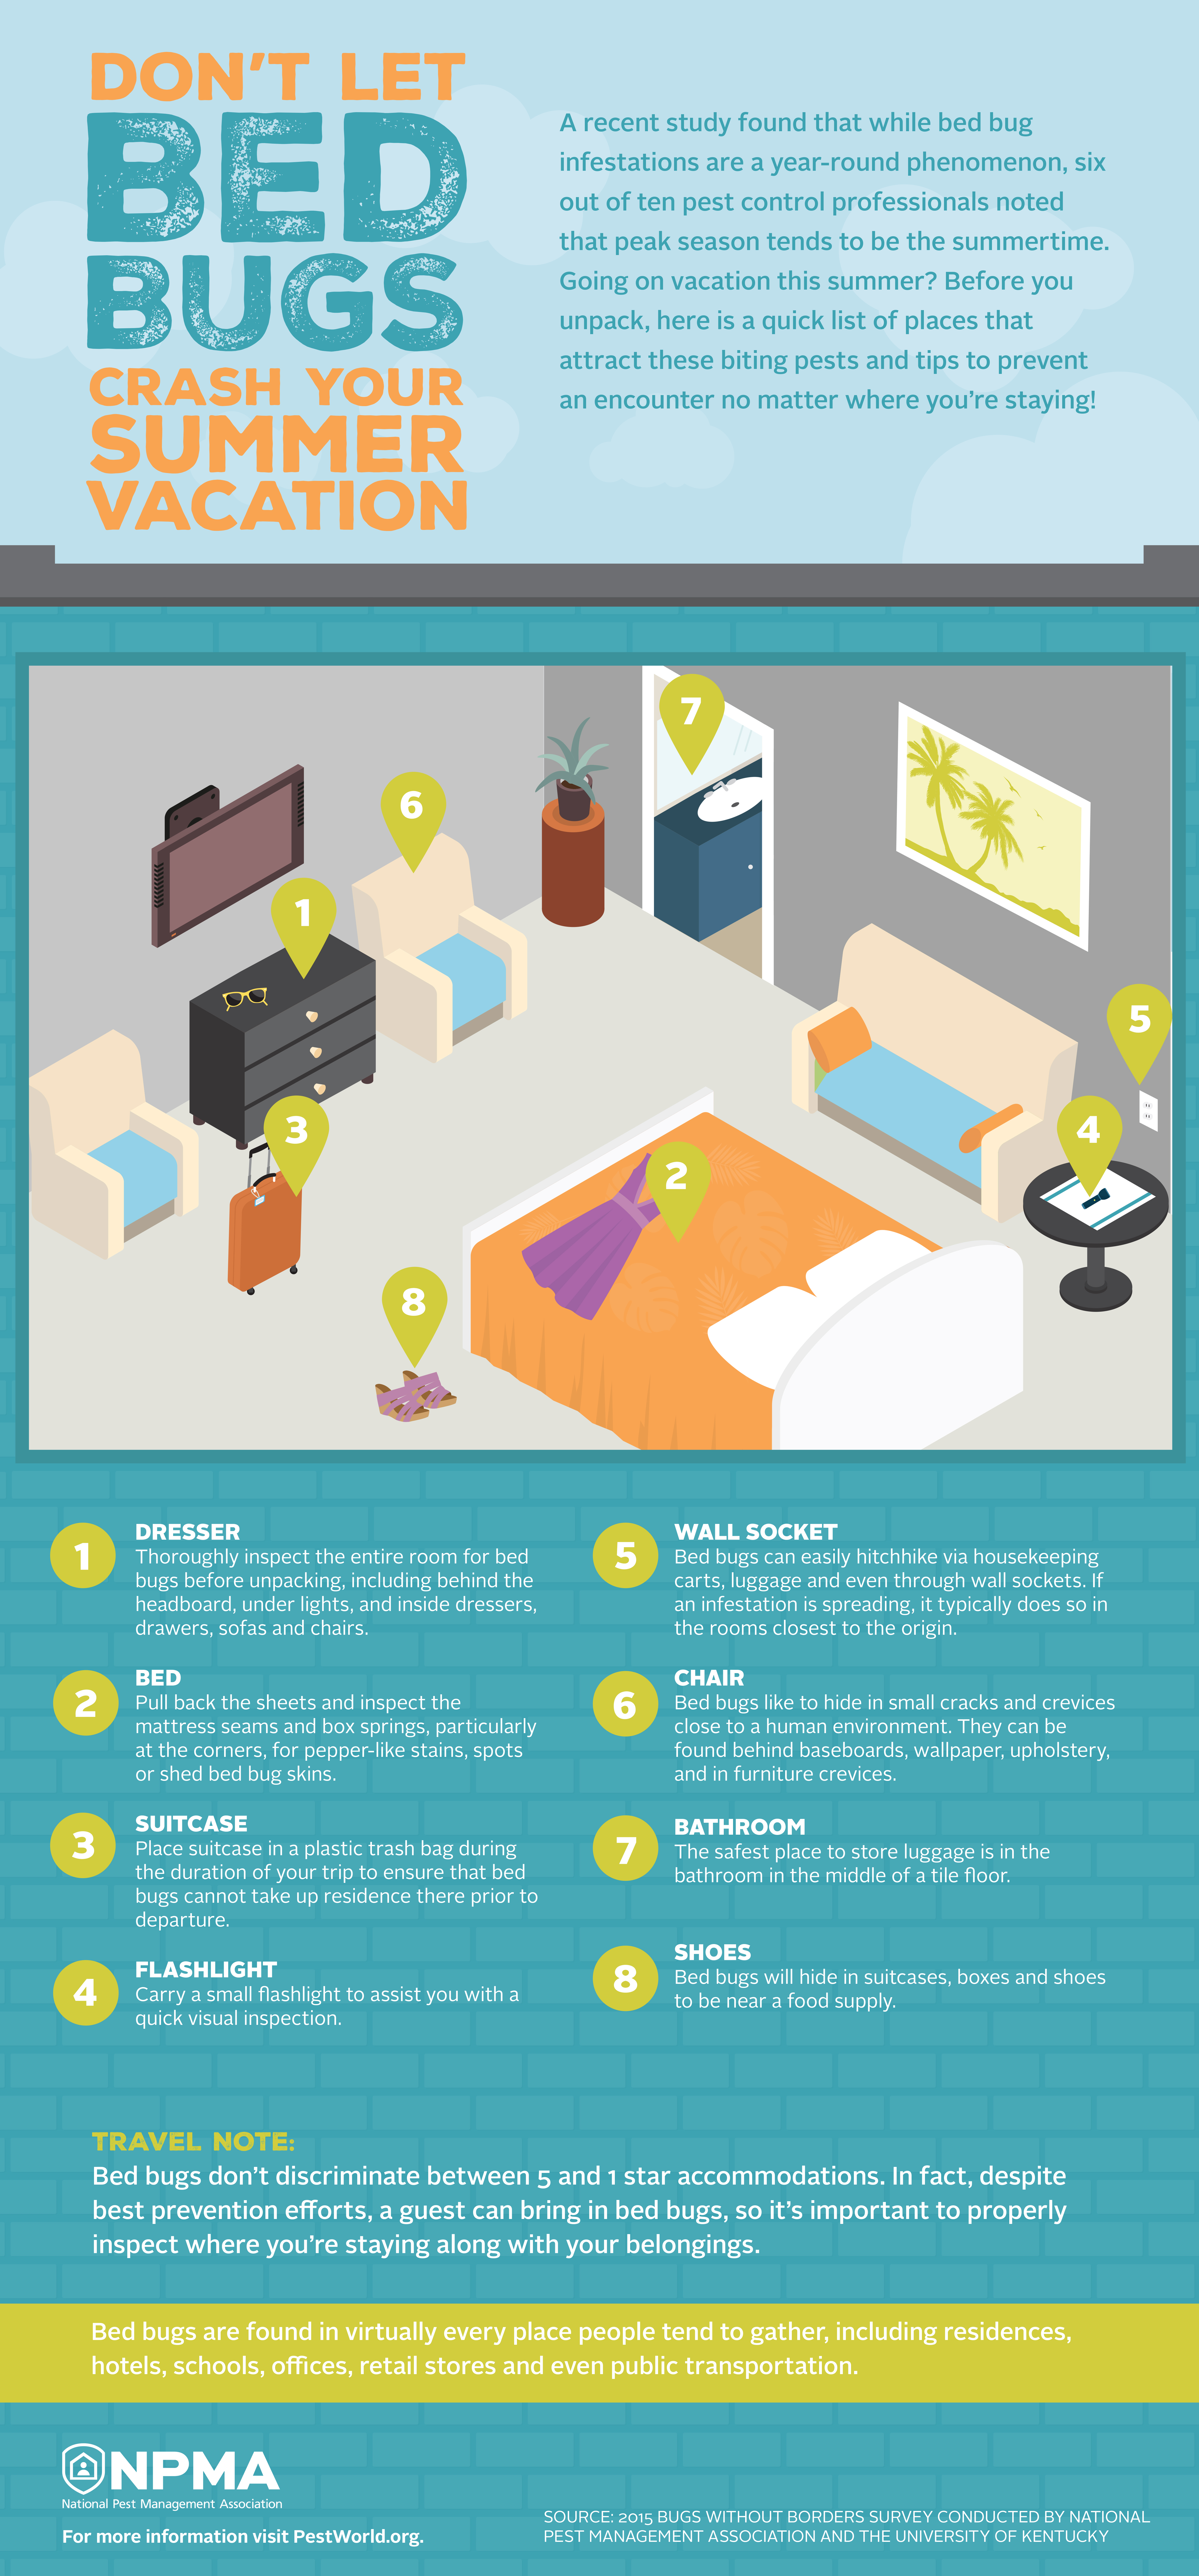 Before you unpack at the beginning of your summer vacation, check out this quick list of places that attract bed bugs and tips to prevent any encounters with these biting pests. (Graphic: Business Wire)